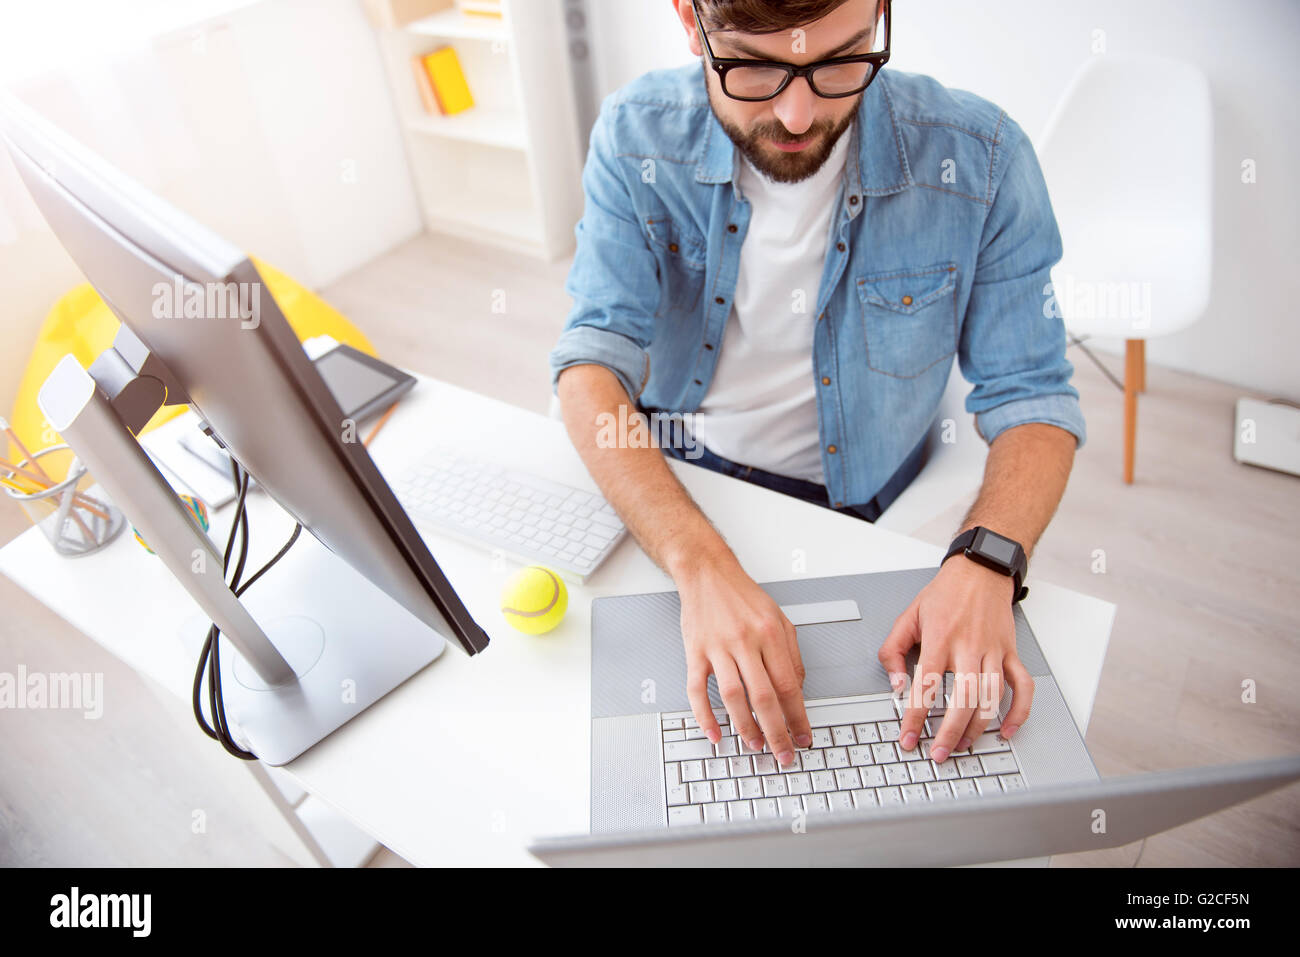 Guy tapping on his laptop - Stock Image